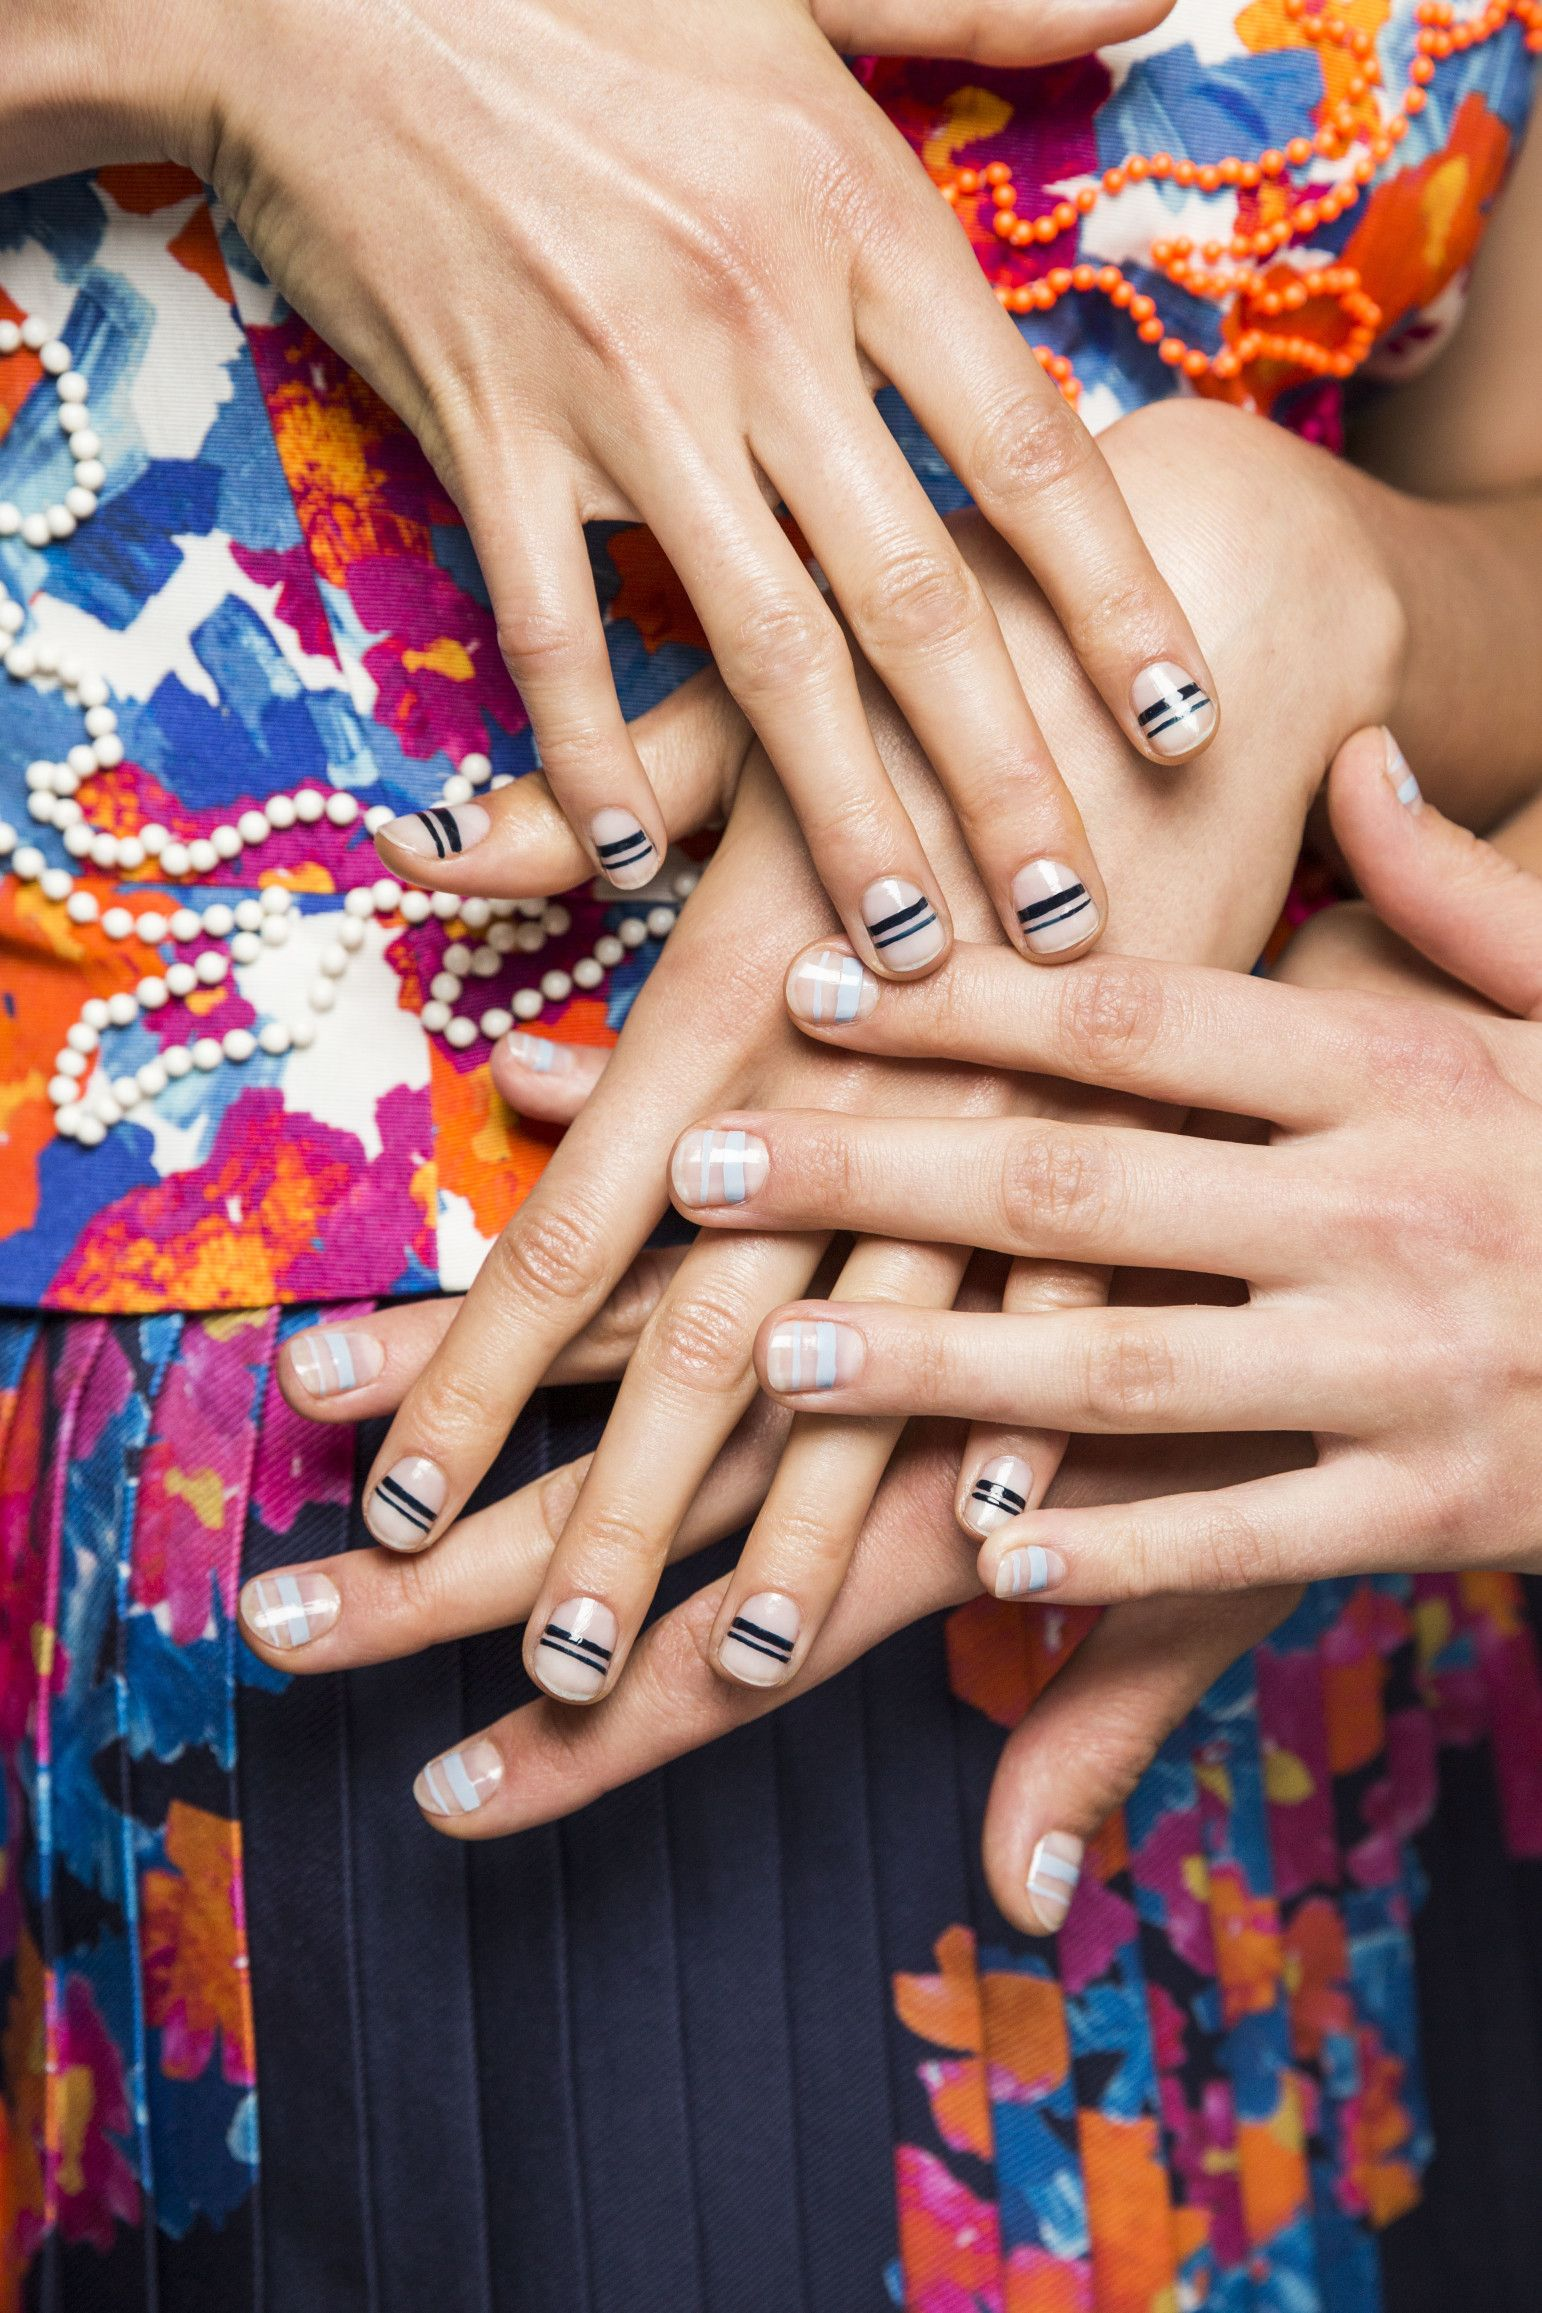 The New Nail Art Trend from Fashion Week | Fashion weeks, Fashion ...